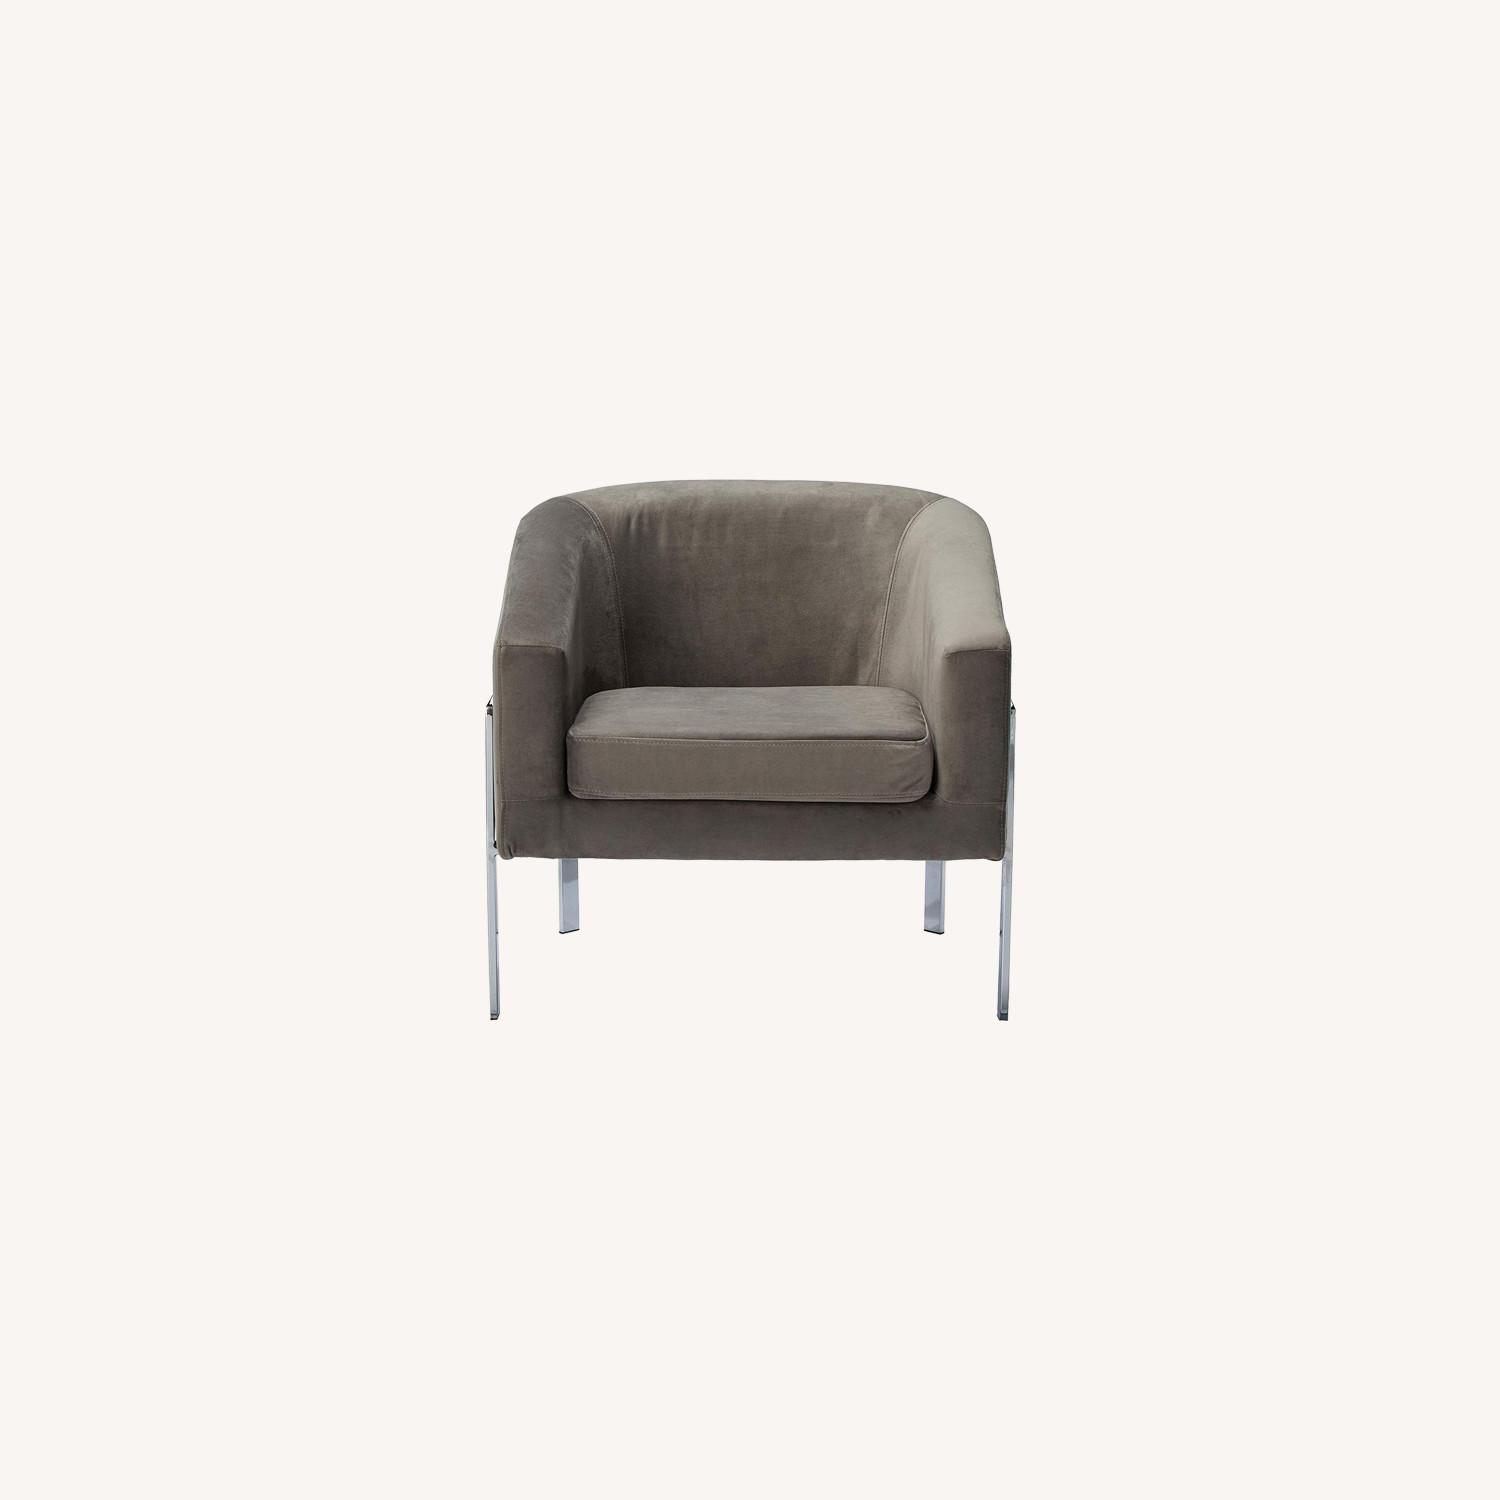 Contemporary Accent Chair in Grey Fabric - image-5